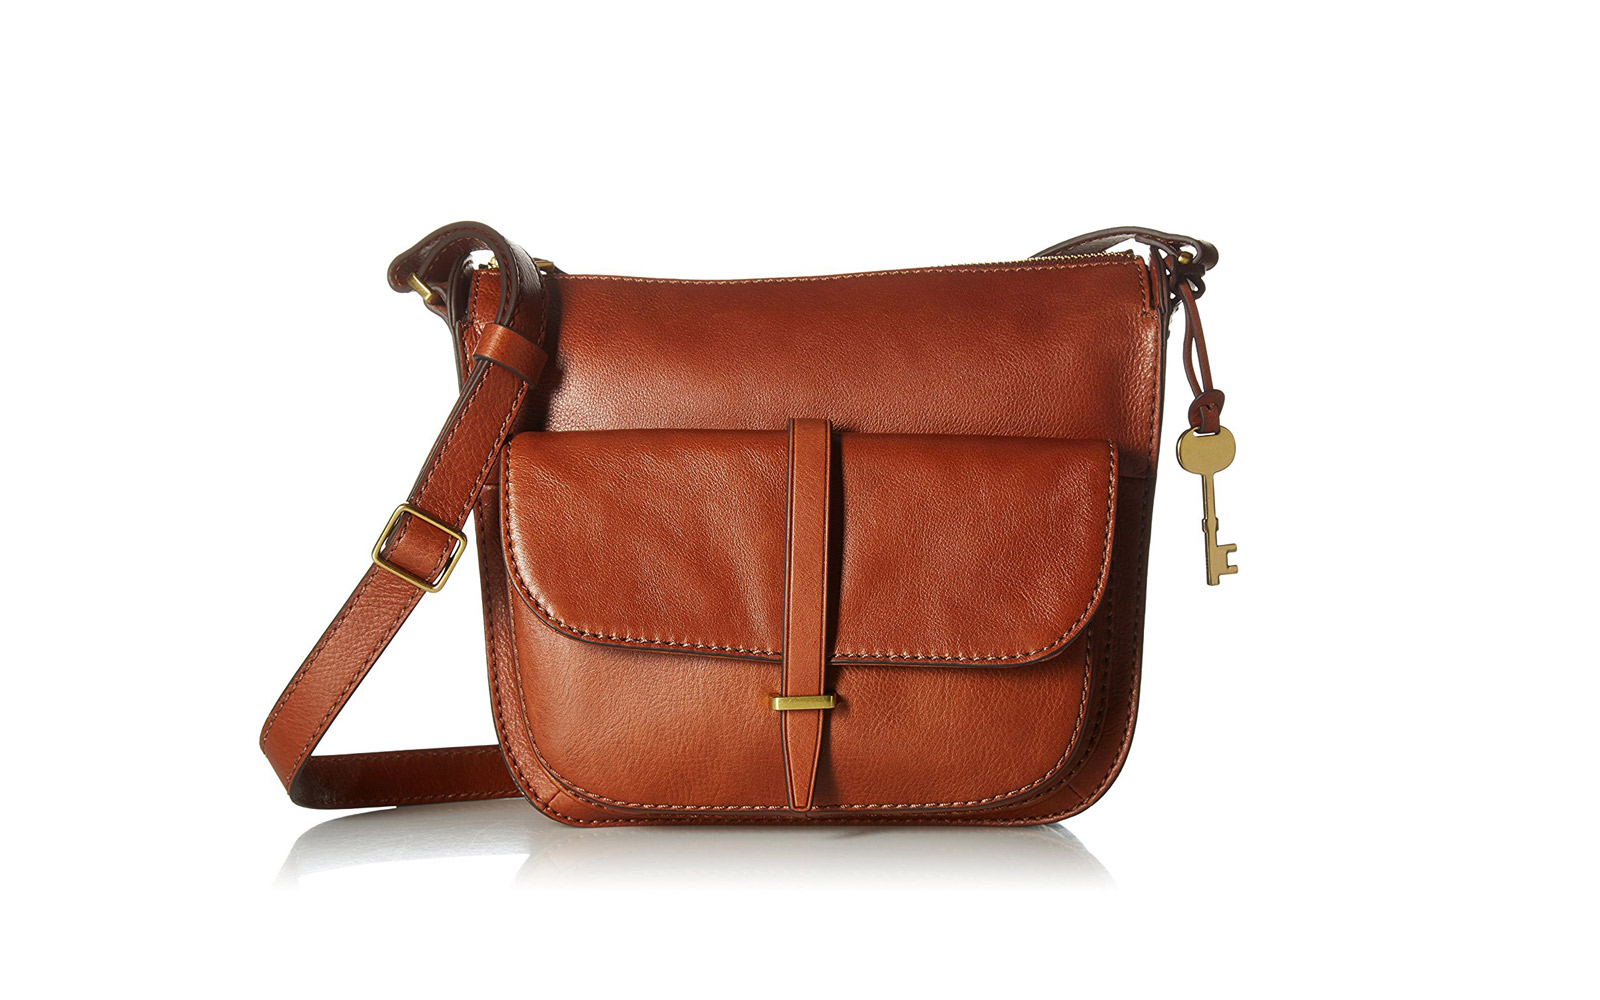 Fossil 'Ryder' Cross-body Bag